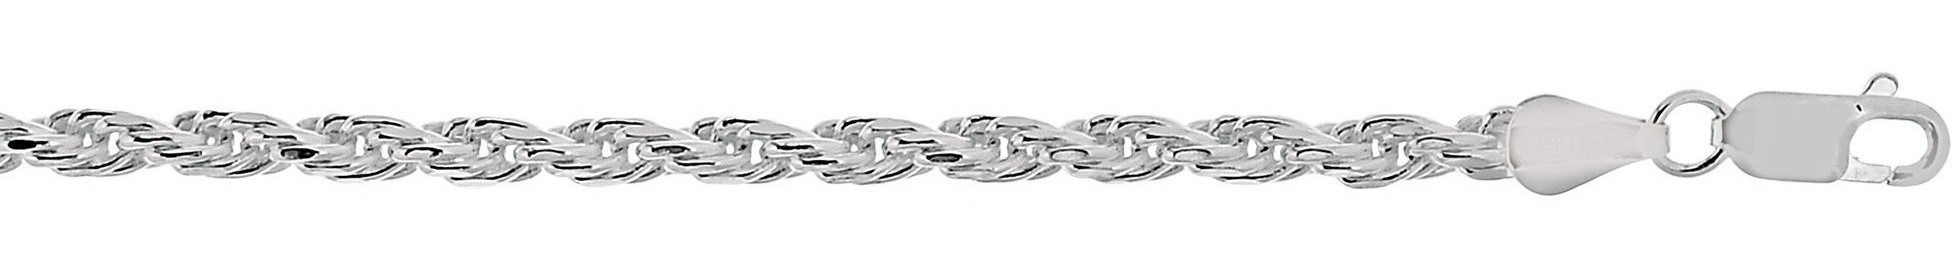 "8.5"" 3.6mm (1/7"") Rhodium Plated Polished Diamond Cut 925 Sterling Silver Rope Chain w/ Lobster Clasp"